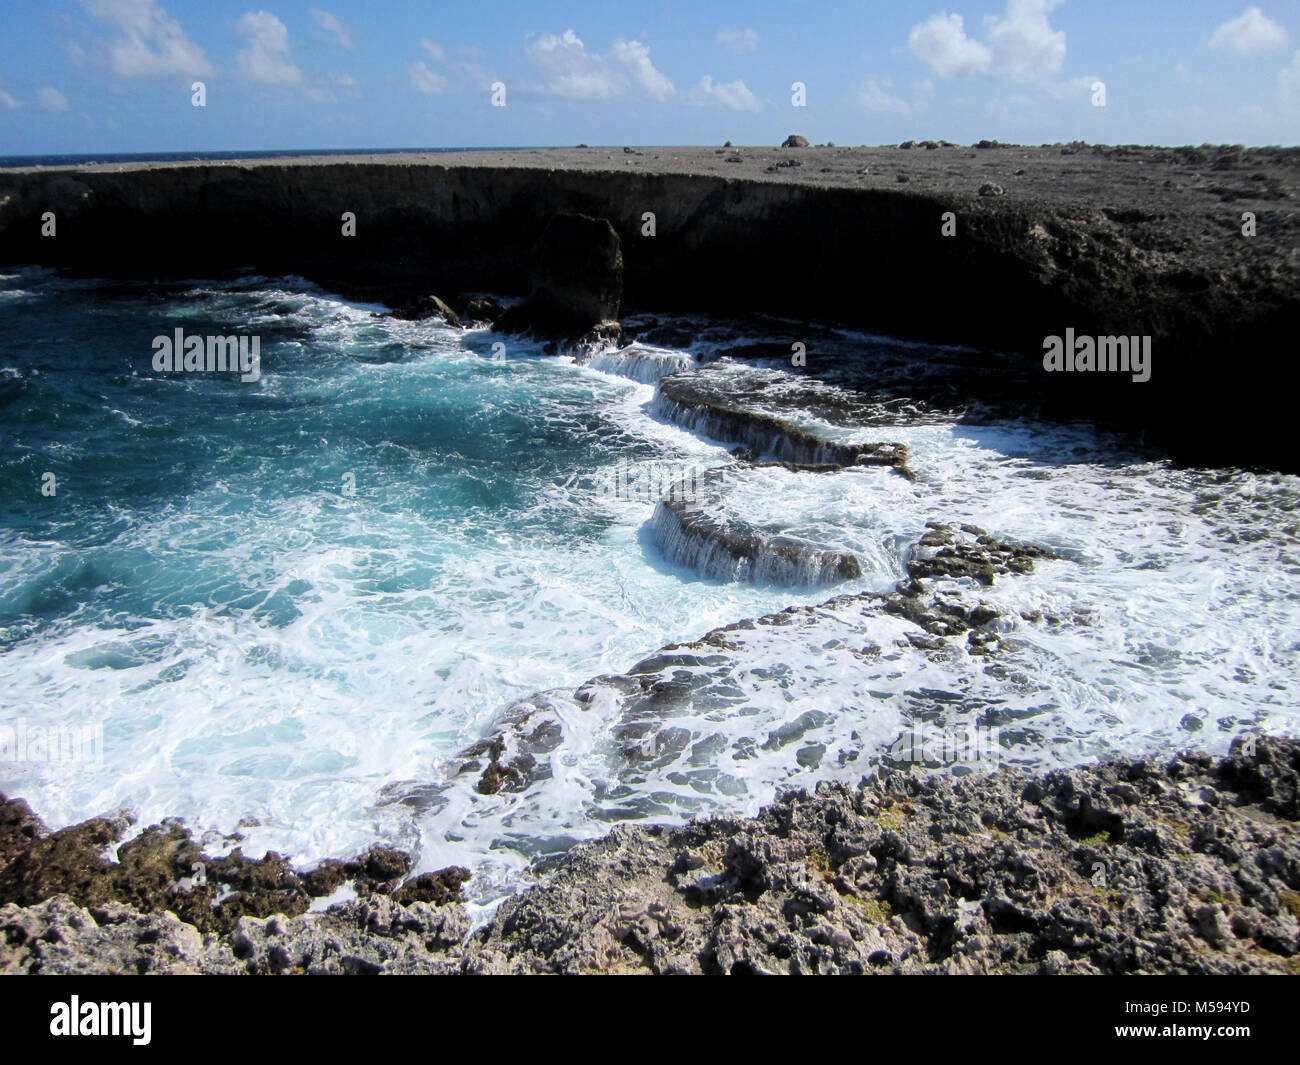 troubled sea at rocky coastline - Stock Image